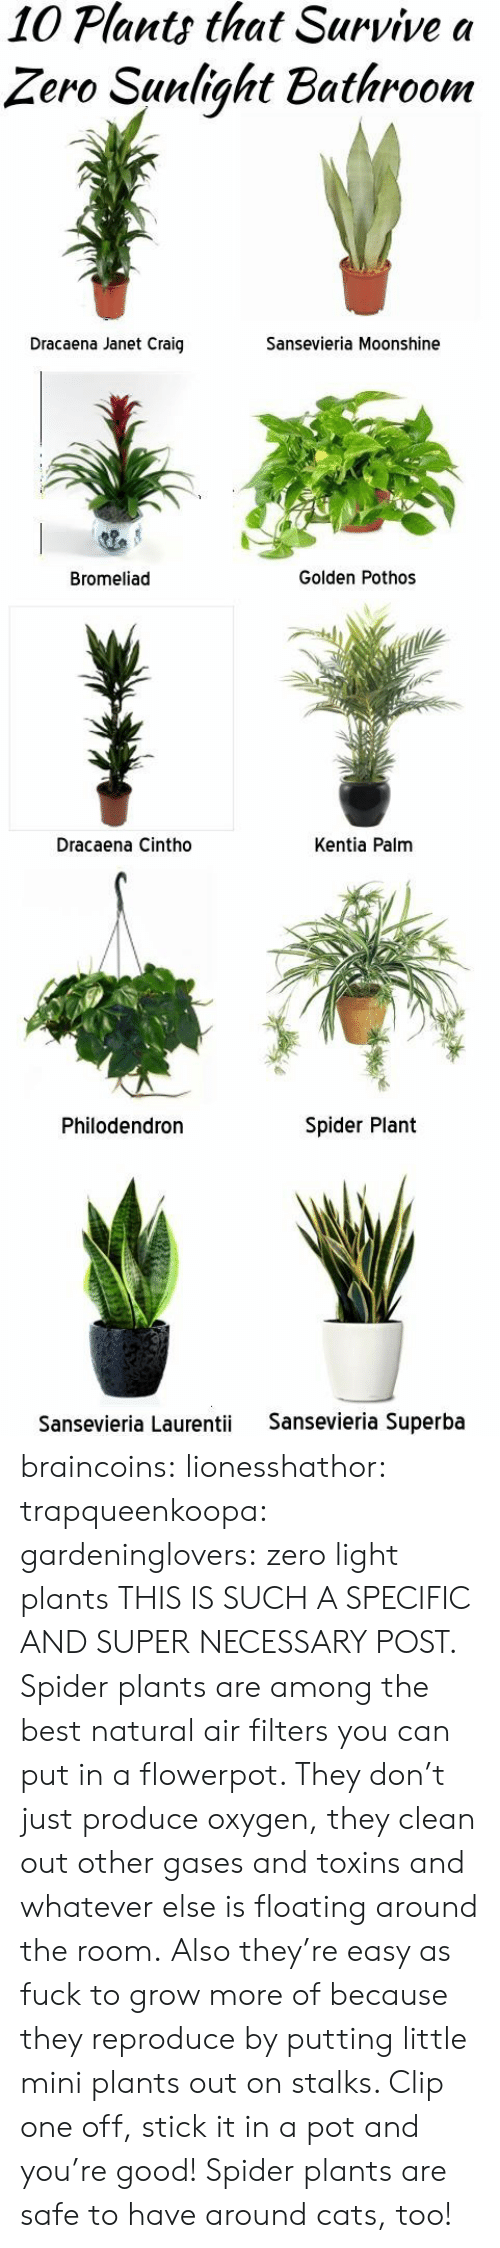 Stick It In: 10 Plants that Survive a  Zero Sunlight Bathroom  Dracaena Janet Craig  Sansevieria Moonshine  Bromeliad  Golden Pothos  Dracaena Cintho  Kentia Palm  Philodendron  Spider Plant  Sansevieria Laurentii  Sansevieria Superba braincoins: lionesshathor:  trapqueenkoopa:  gardeninglovers:  zero light plants  THIS IS SUCH A SPECIFIC AND SUPER NECESSARY POST.   Spider plants are among the best natural air filters you can put in a flowerpot. They don't just produce oxygen, they clean out other gases and toxins and whatever else is floating around the room. Also they're easy as fuck to grow more of because they reproduce by putting little mini plants out on stalks. Clip one off, stick it in a pot and you're good!  Spider plants are safe to have around cats, too!